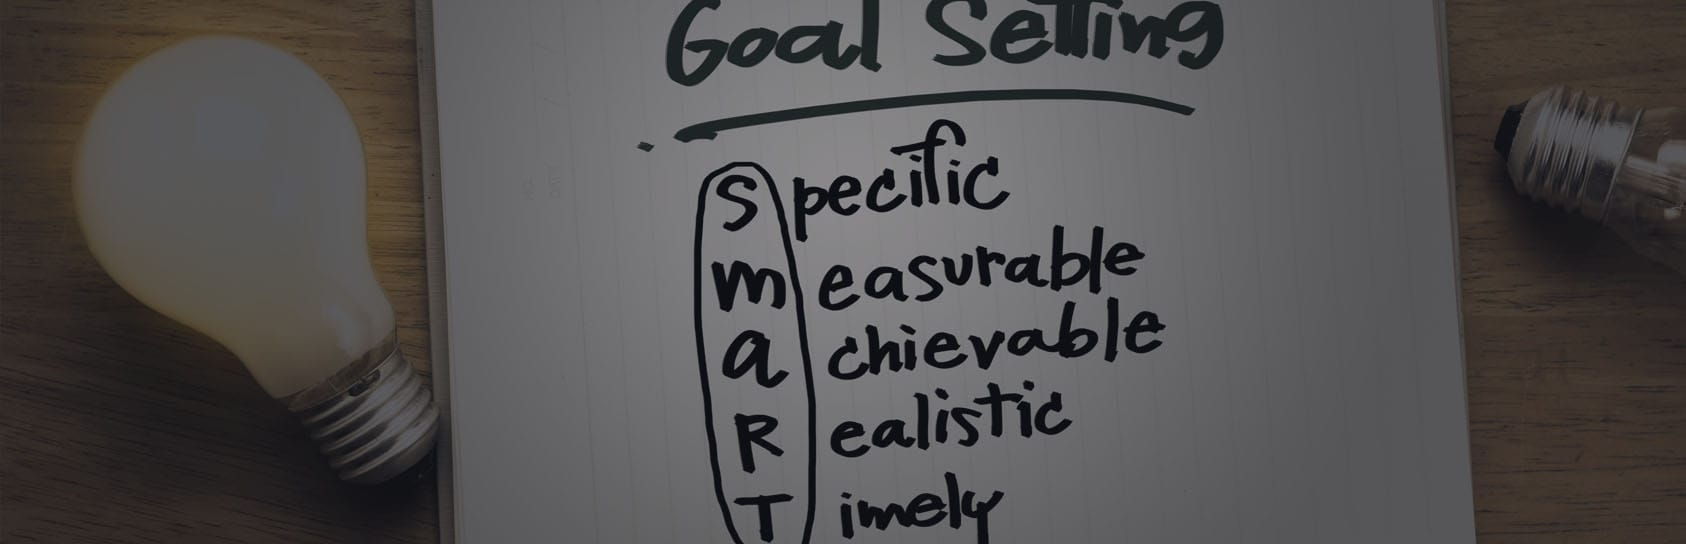 examples of smart goals for marketing